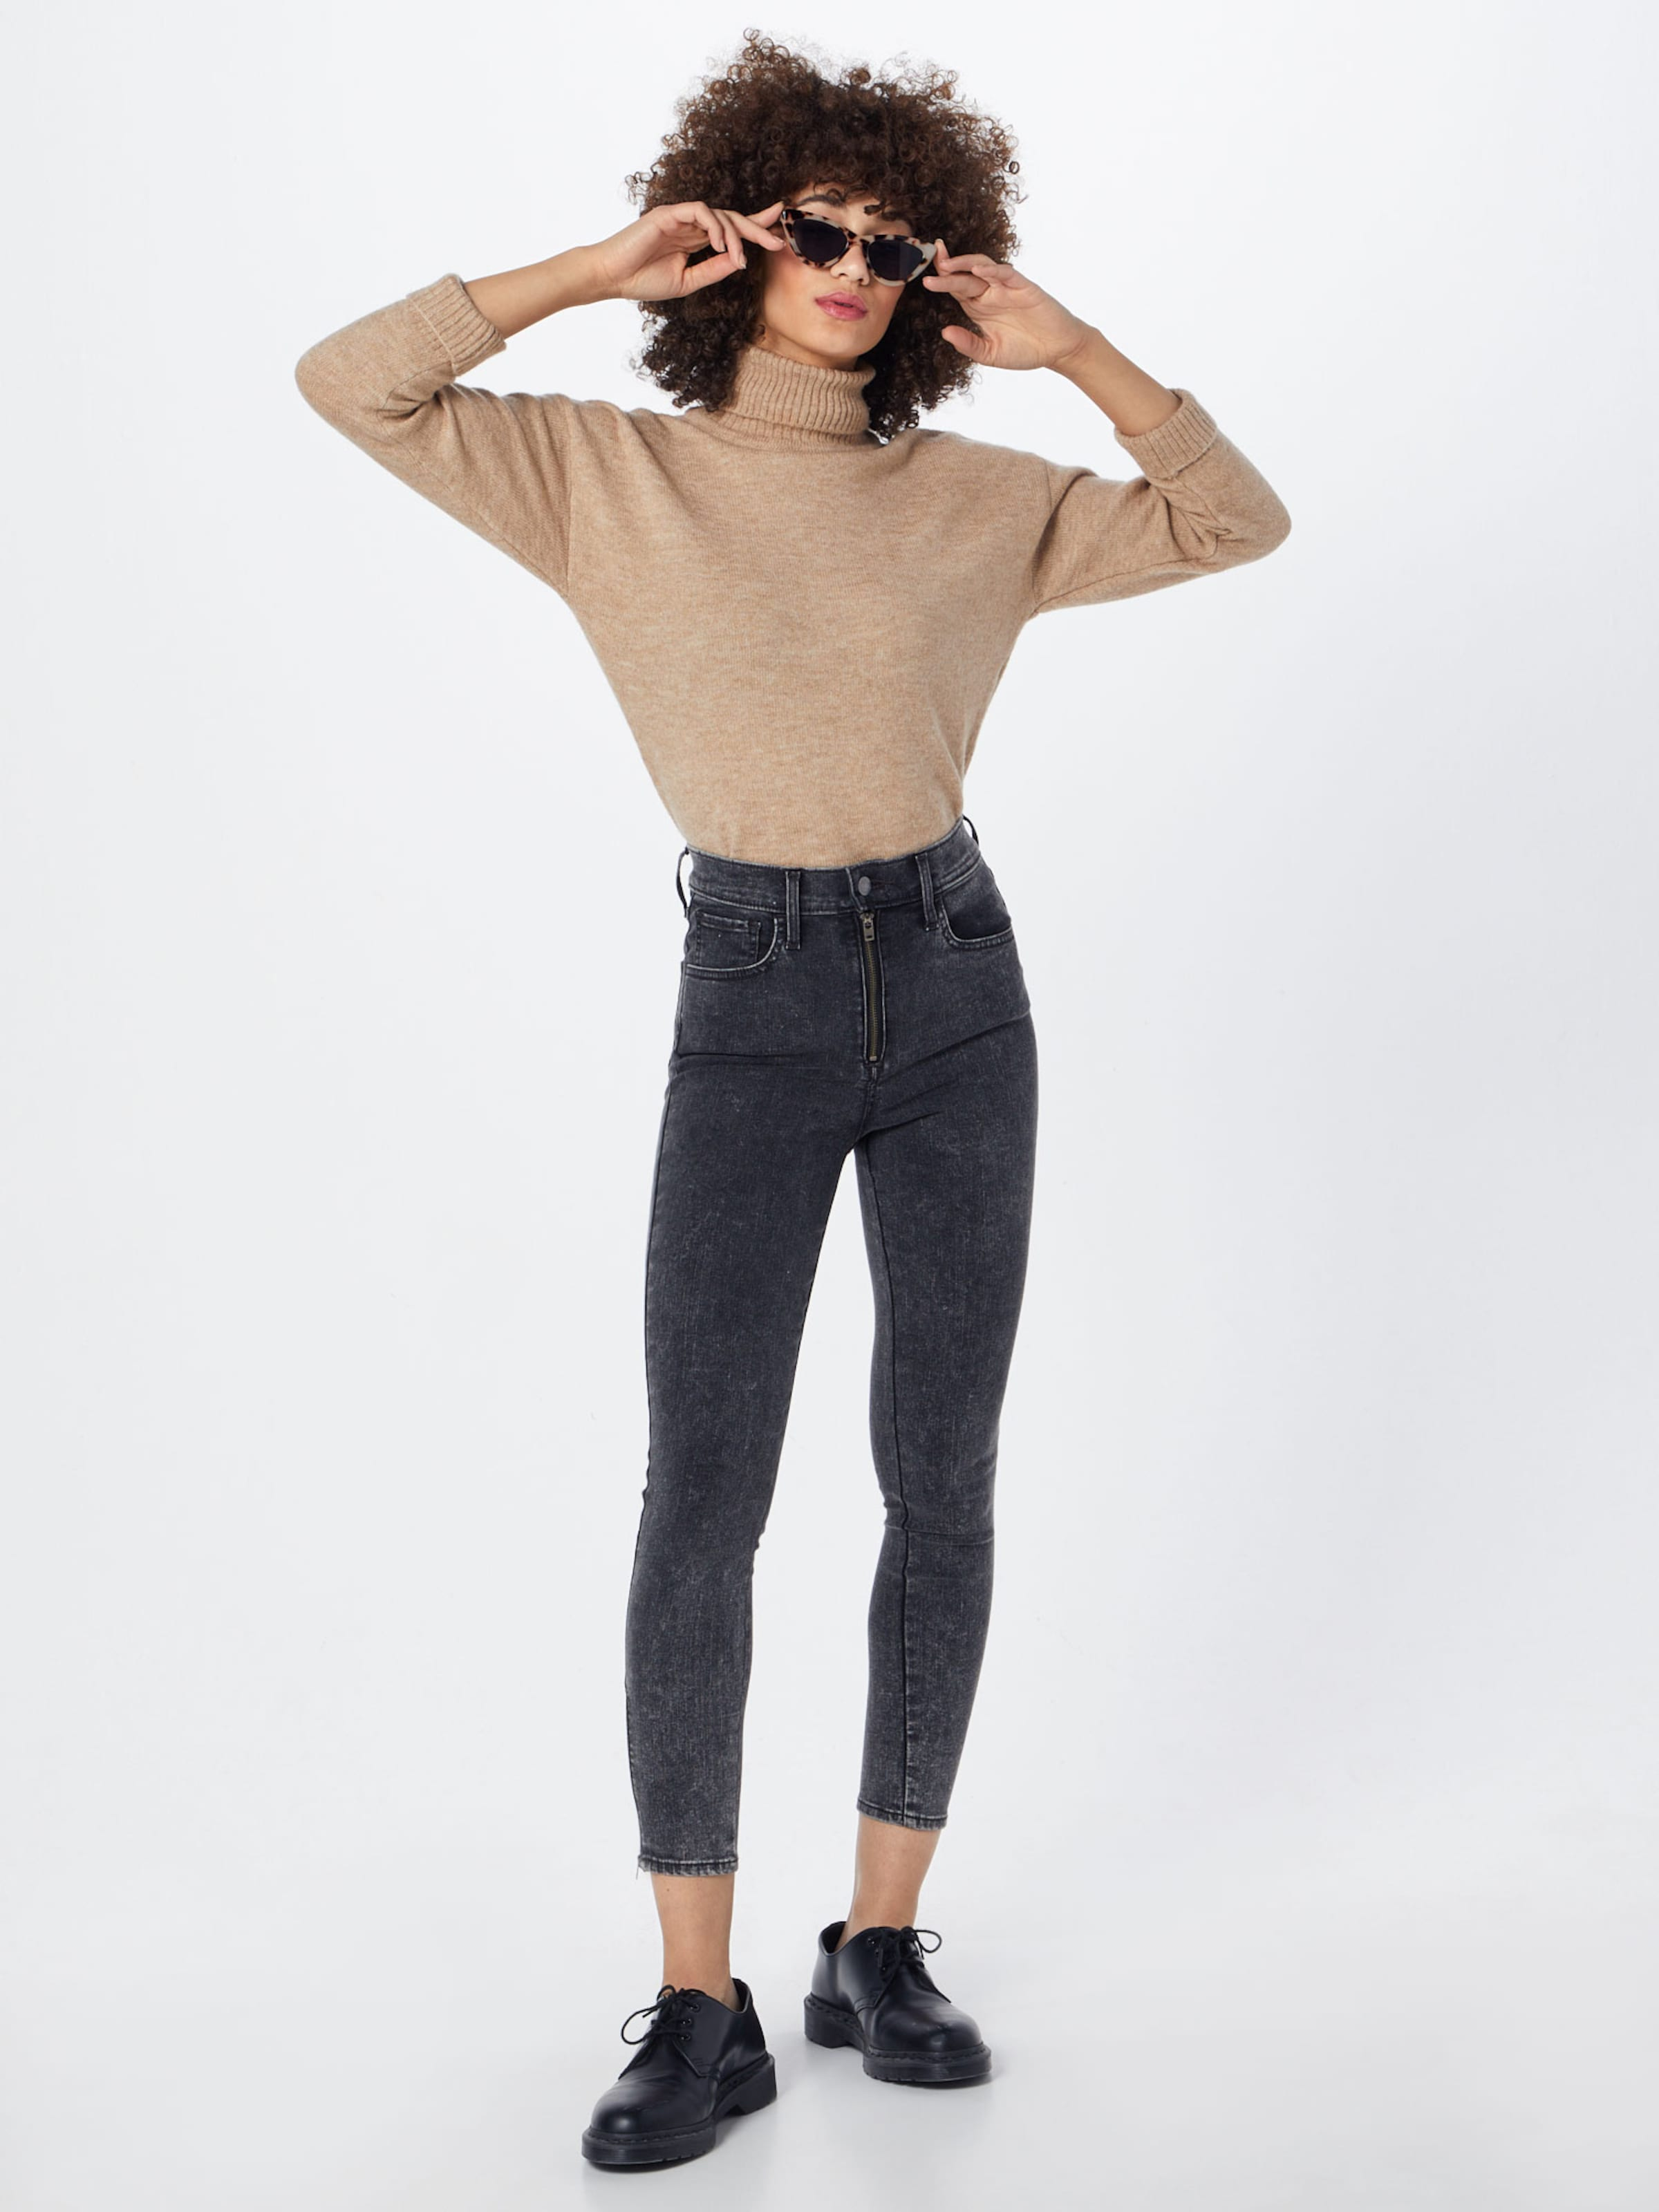 Levi's Mh Ankle T3' Jeans Denim 'moto Grey In hsxrCtQd